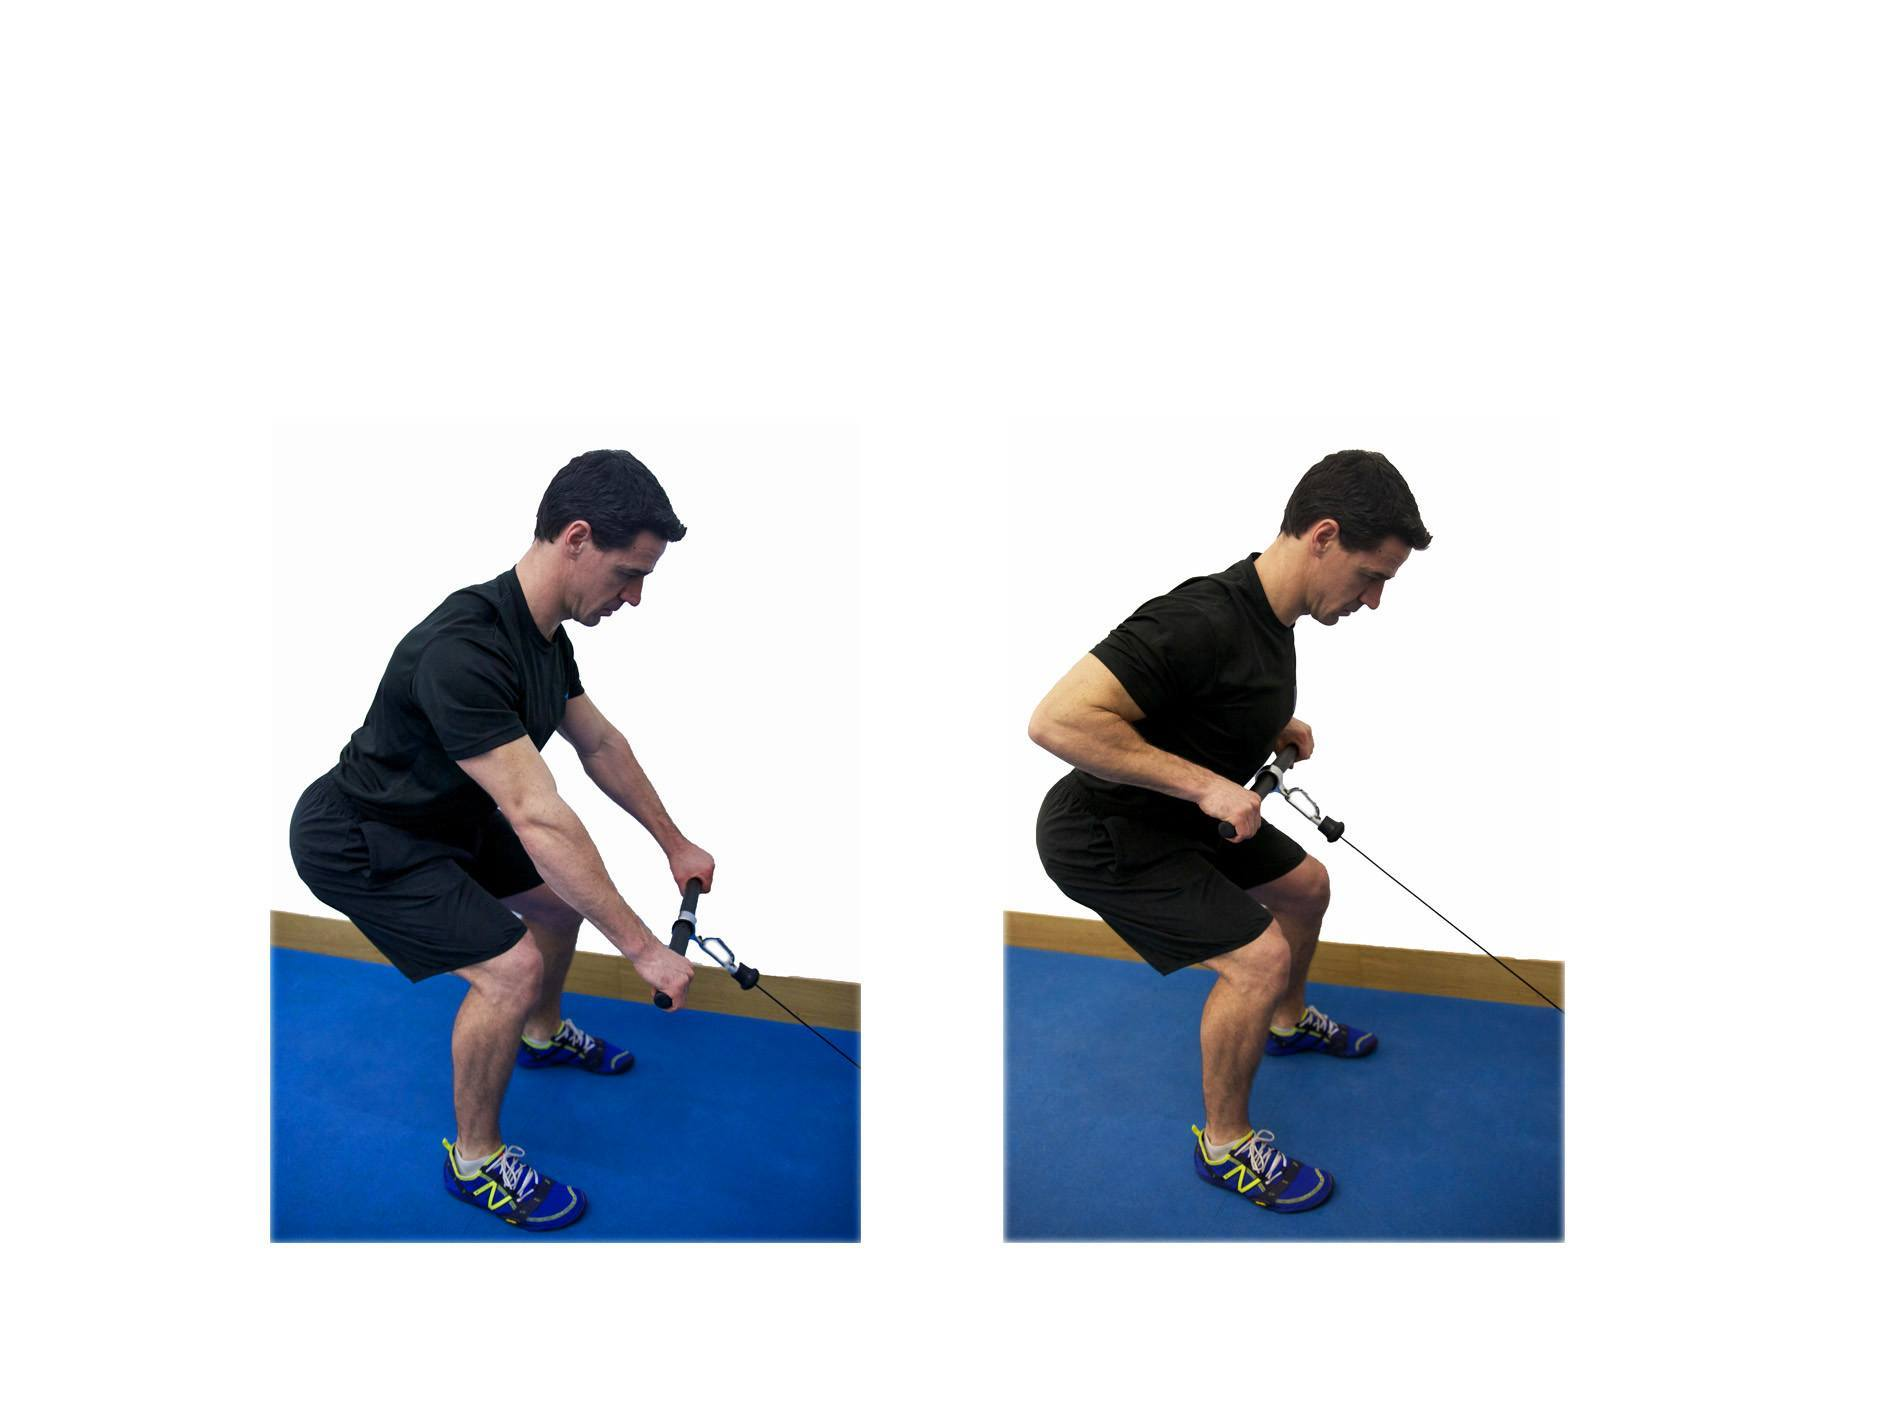 Bend over row exercises for lower back pain